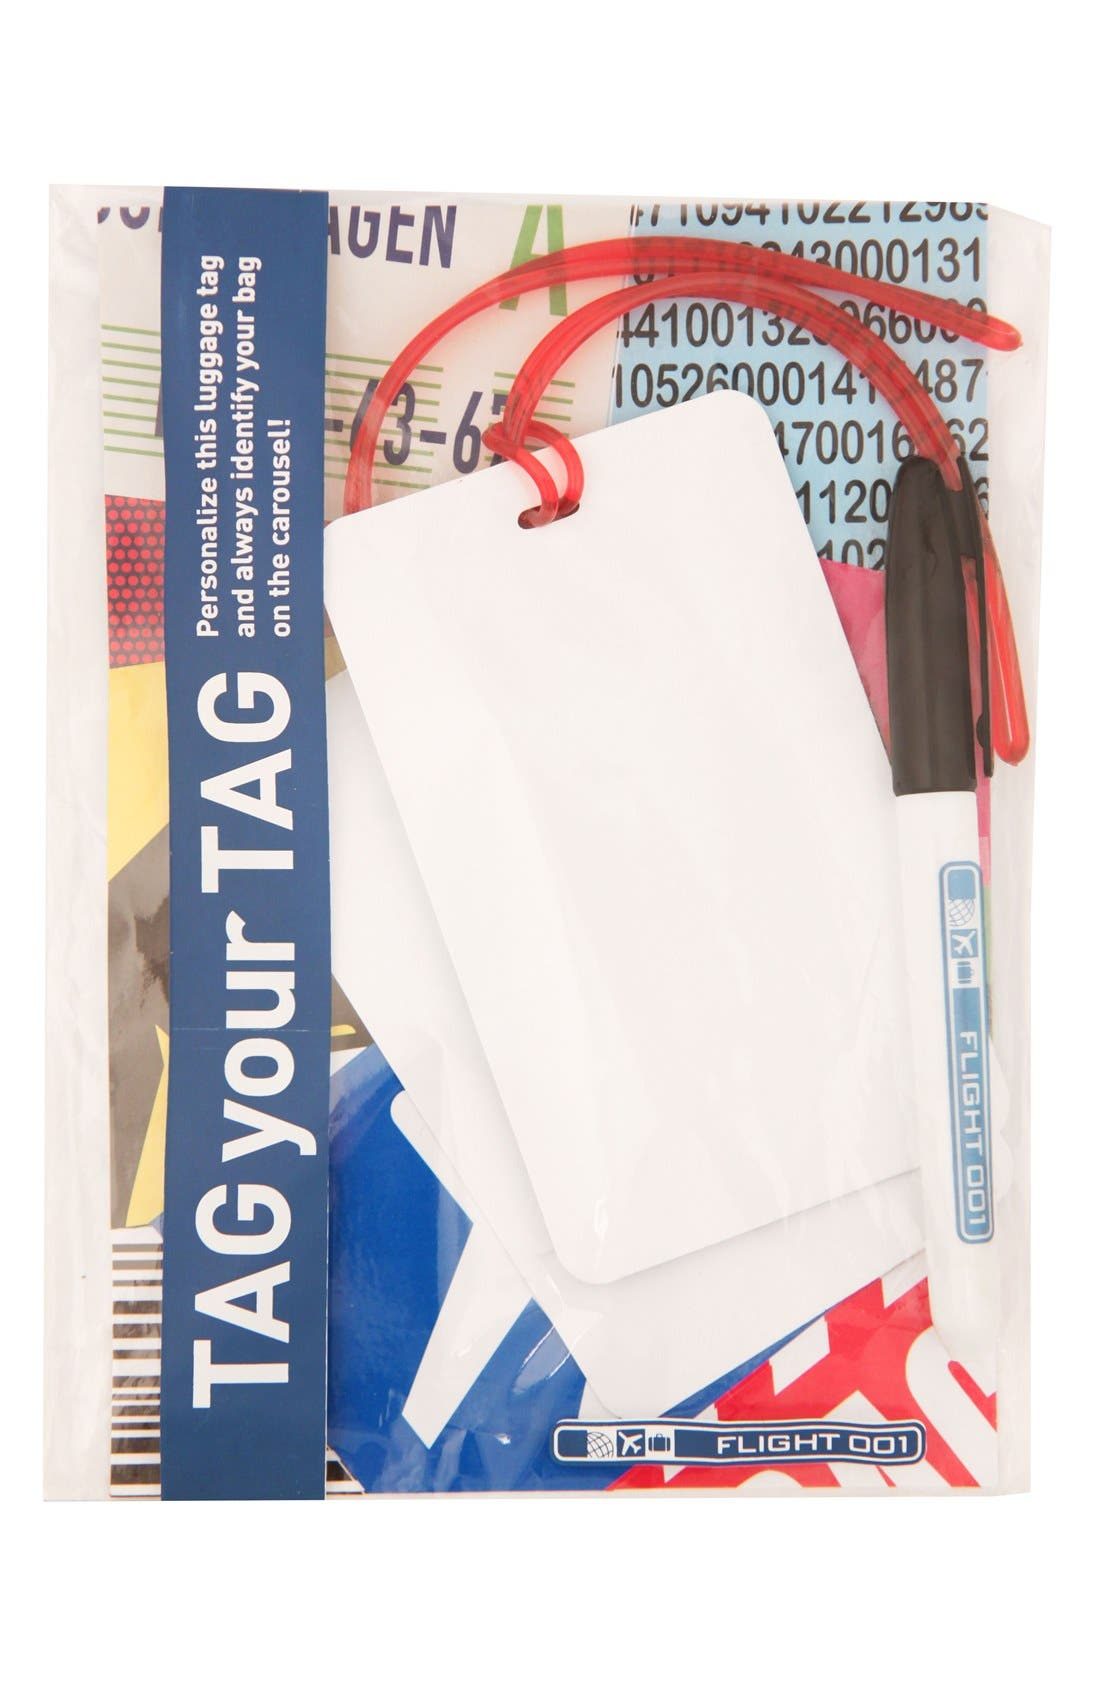 Alternate Image 1 Selected - Flight 001 'Tag Your Tag' Luggage Tags (Set of 2)